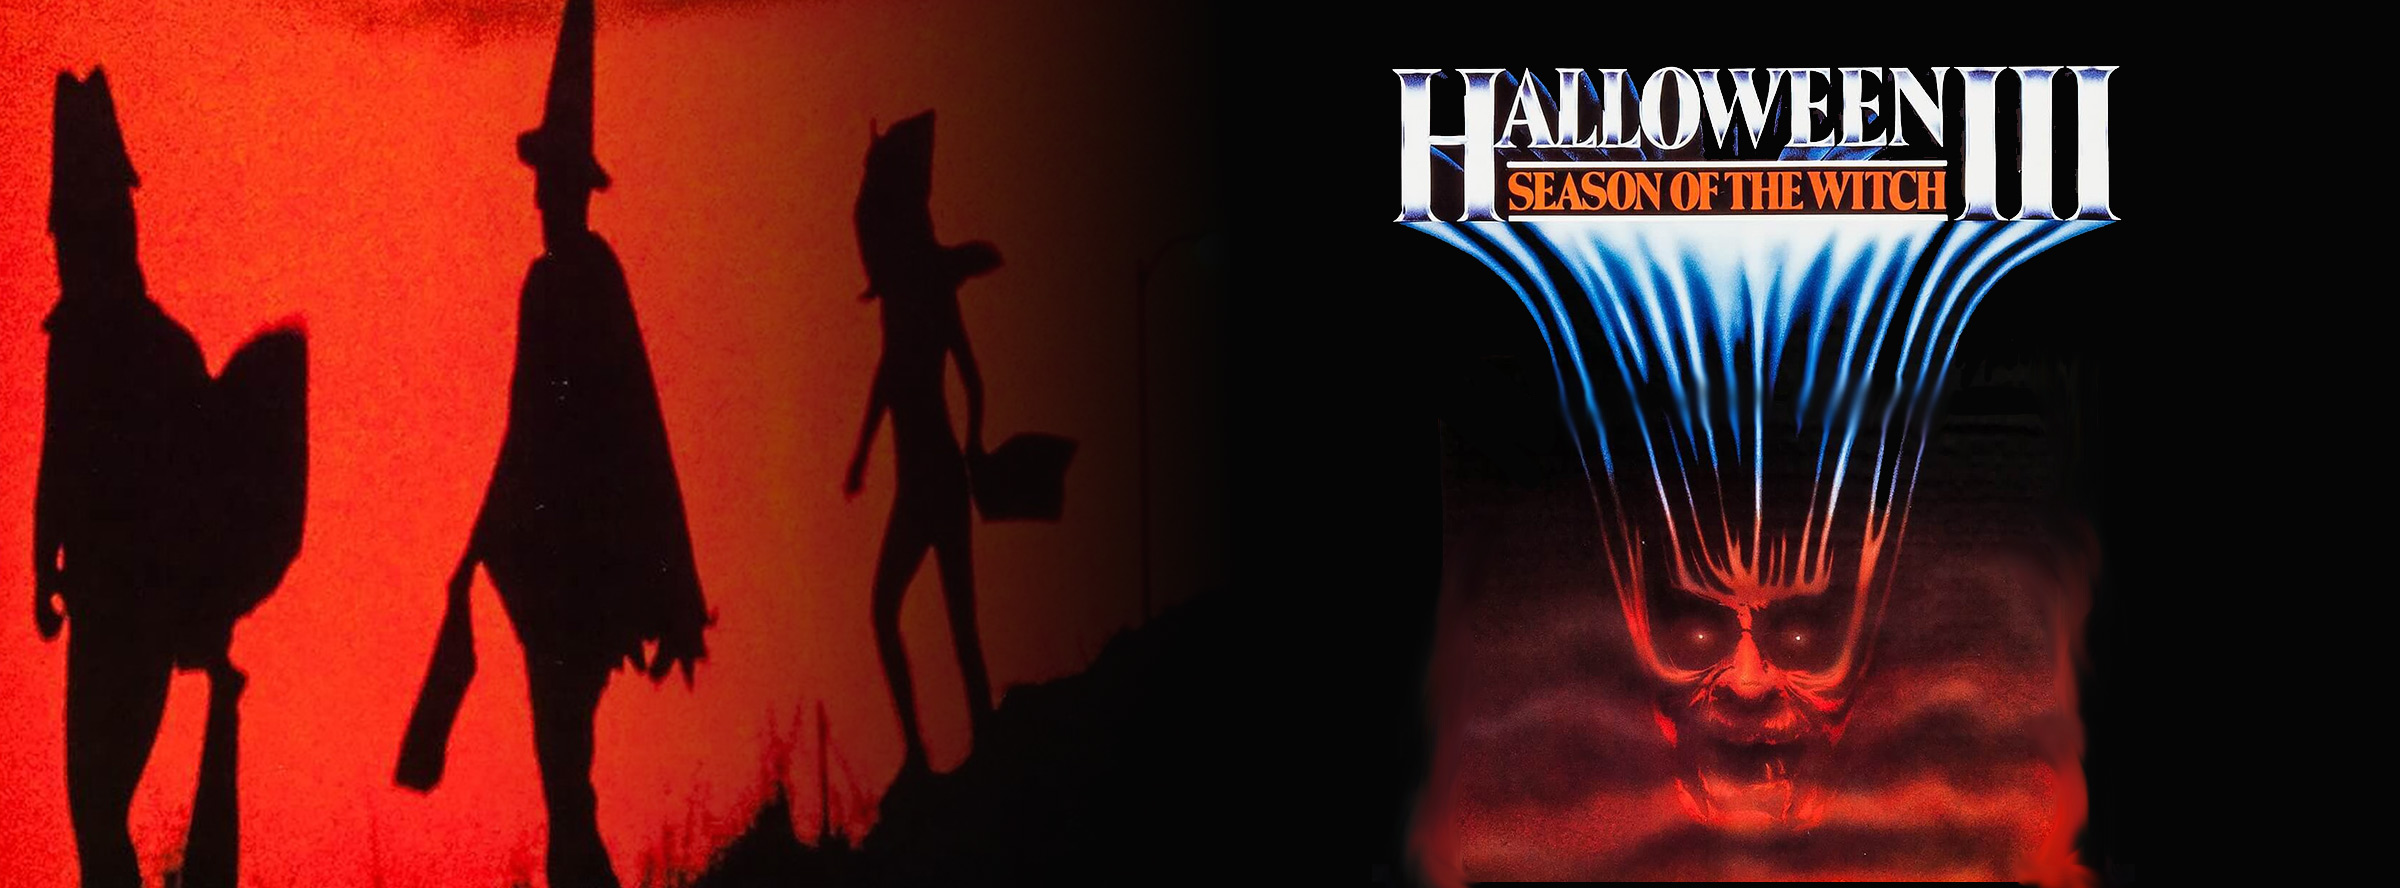 Slider Image for Halloween 3: Season of the Witch